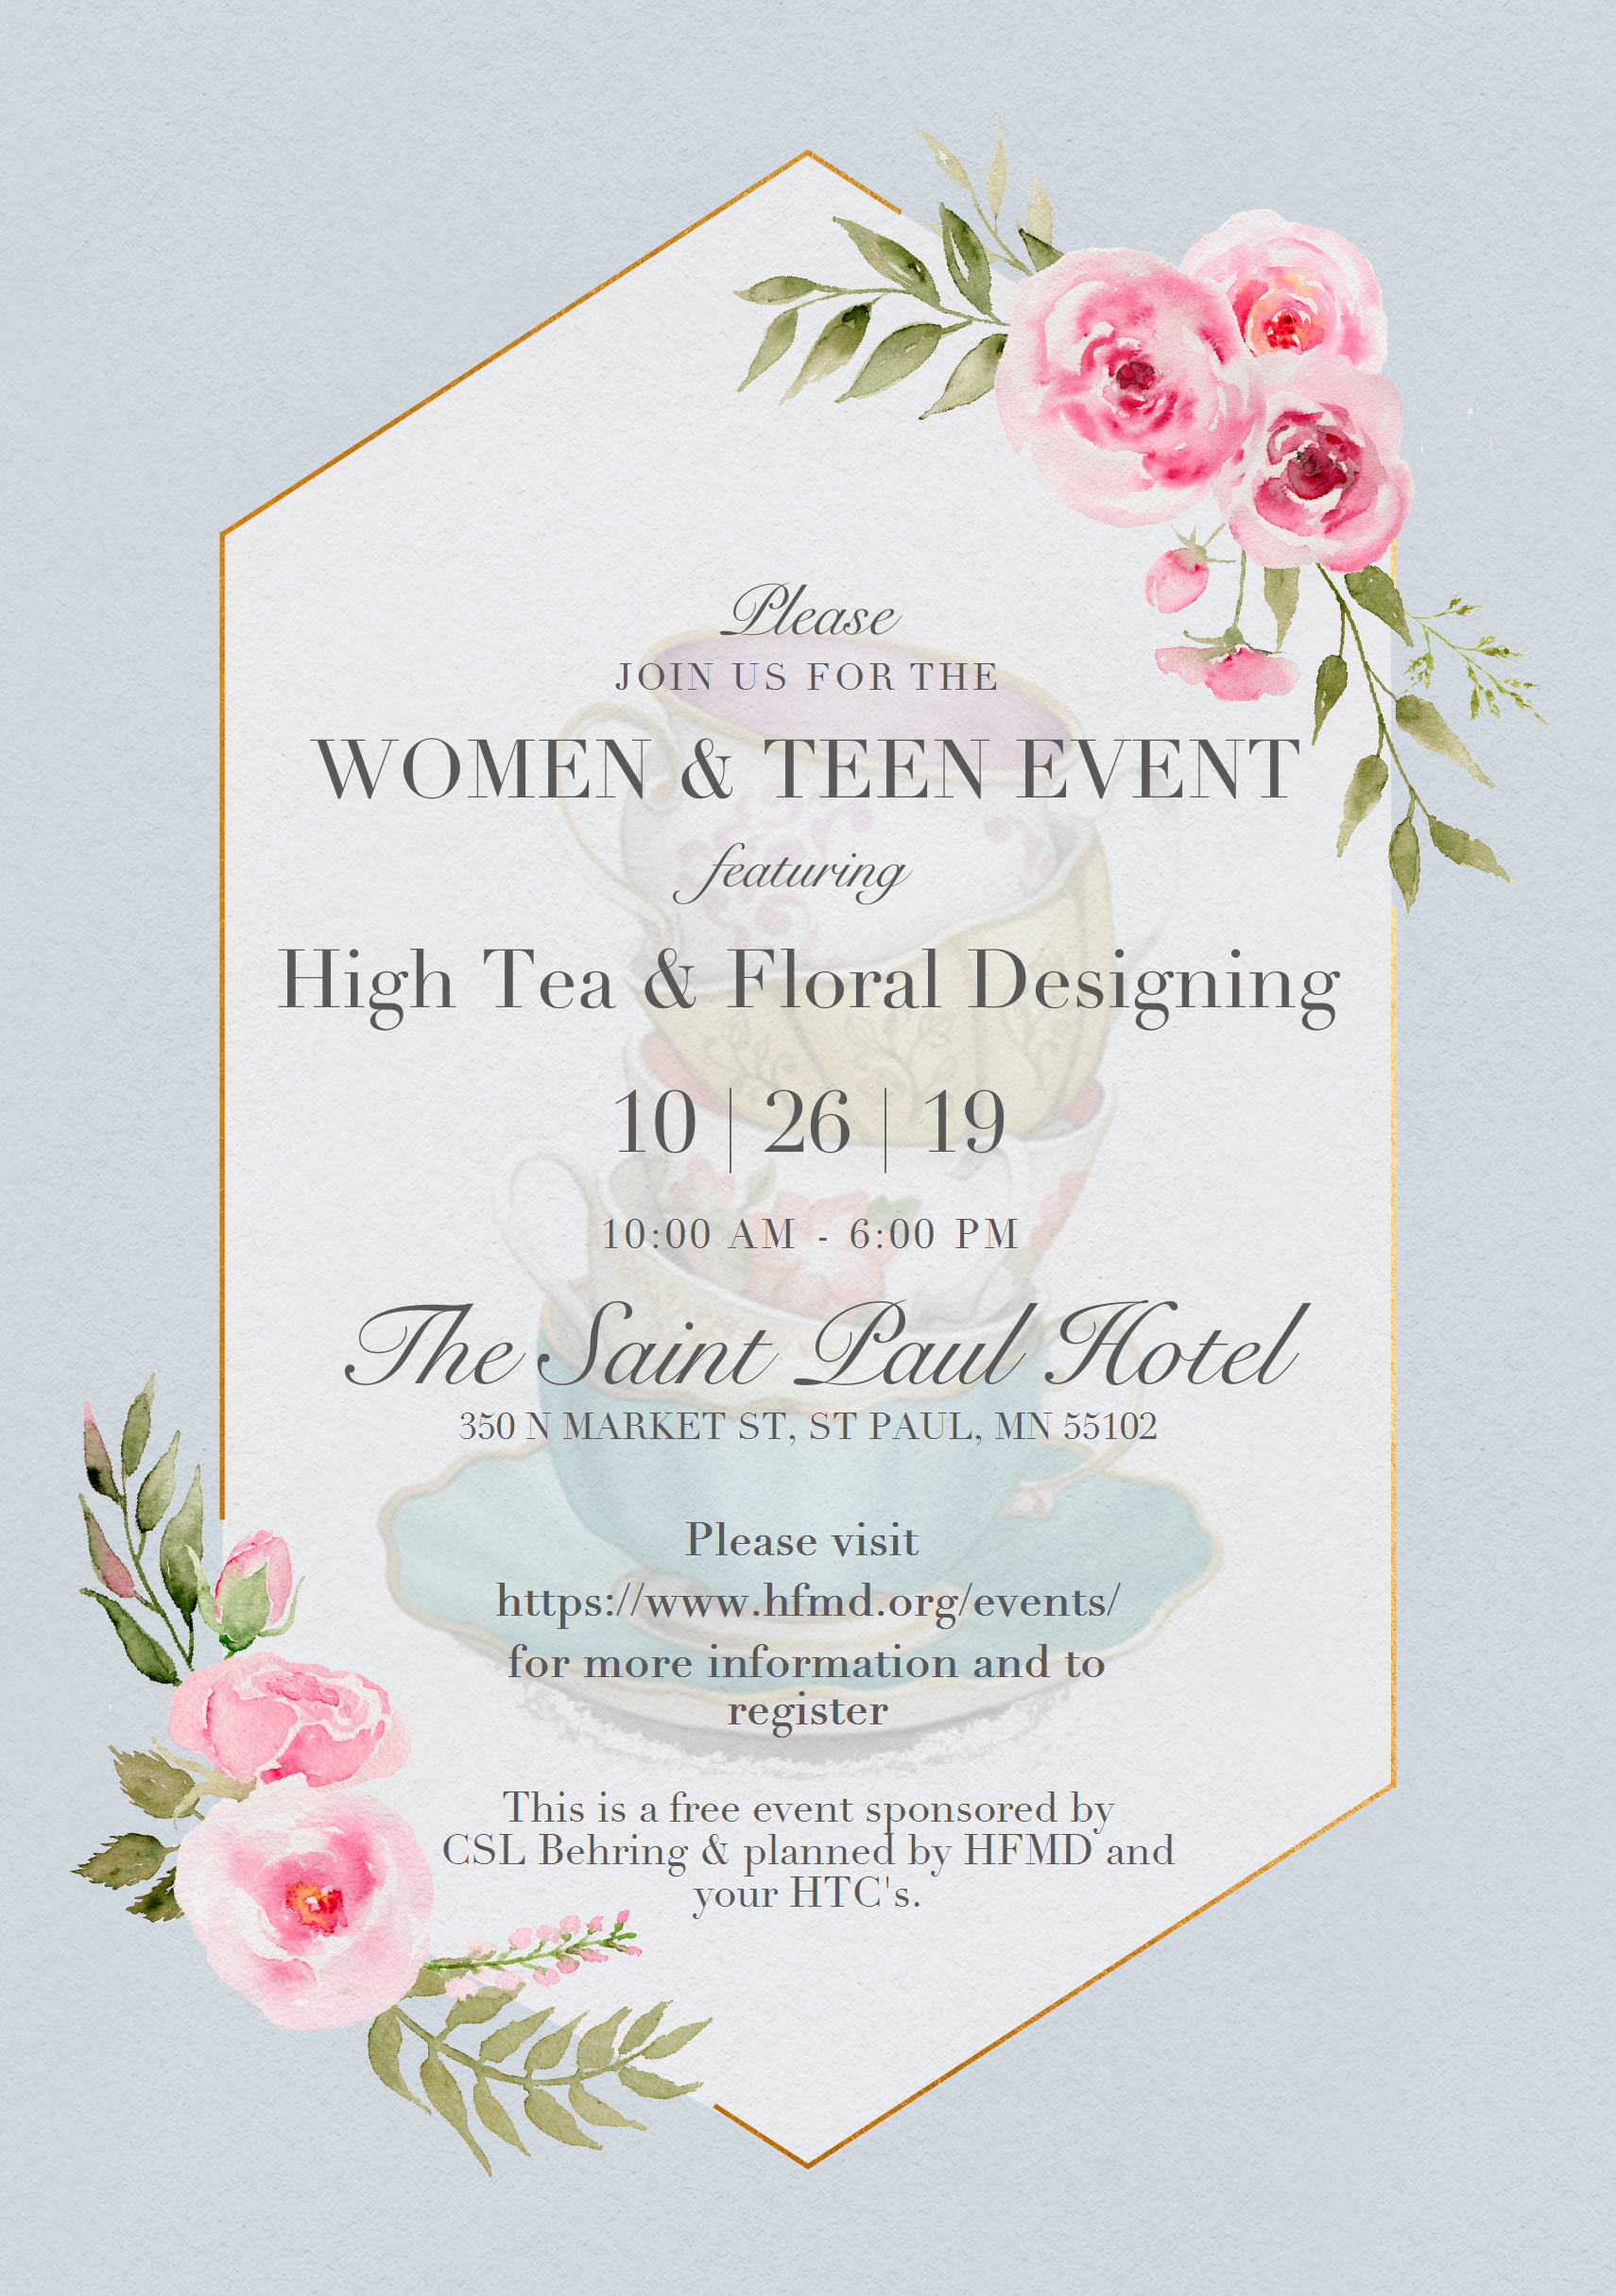 Women & Teen Event